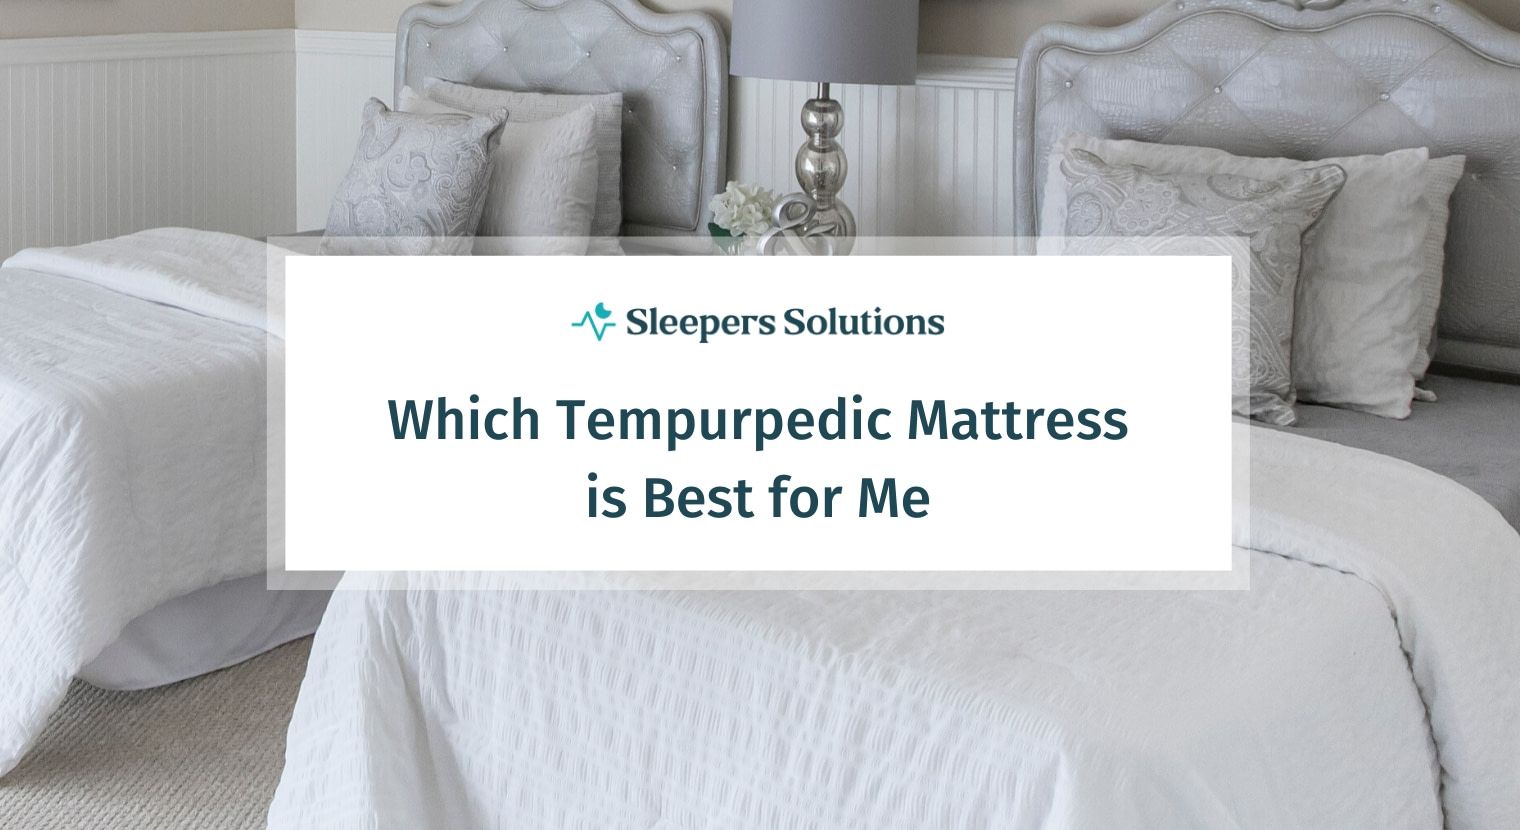 Which Tempurpedic Mattress is Best for Me